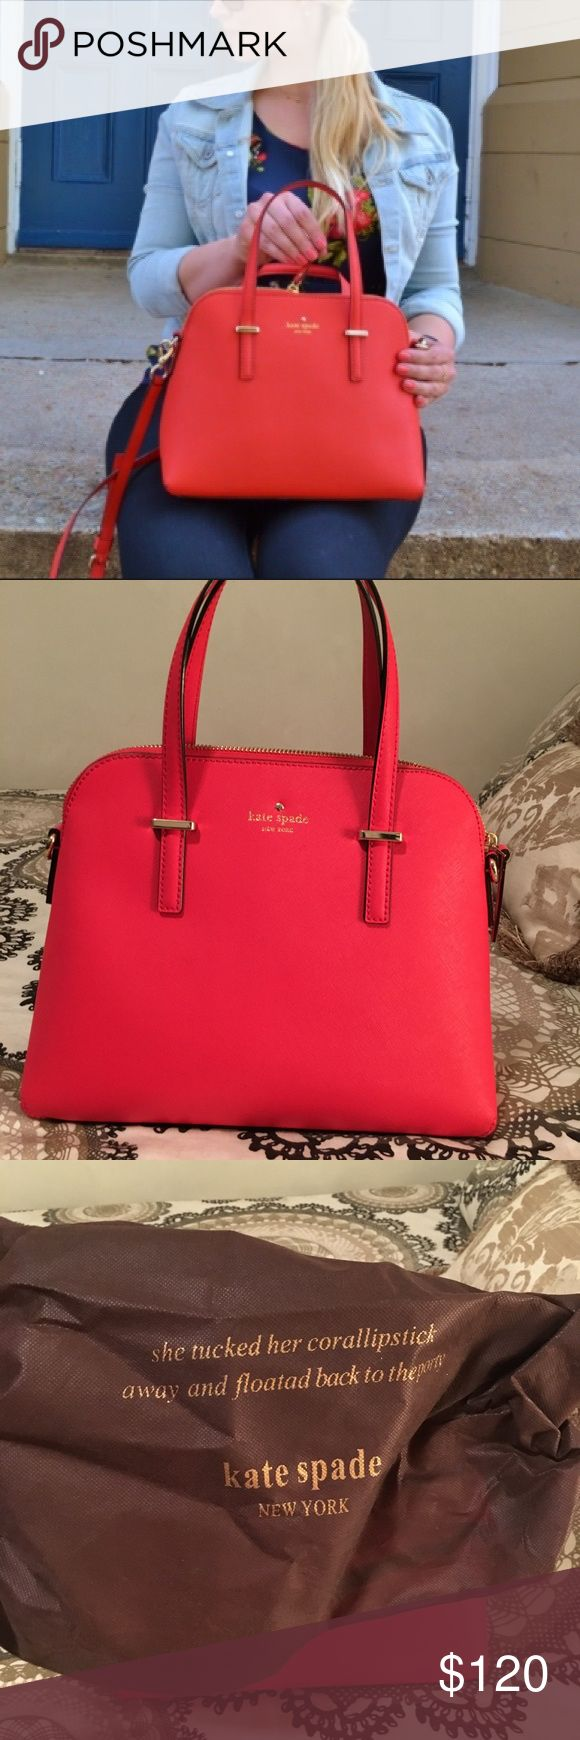 "EUC Kate Spade Cedar Street Maise handbag Gorgeous. Only used once. Comes with original dust bag and shoulder strap. Color is ""geranium,"" it's like a red to deep pink color. Stunning! kate spade Bags Satchels"